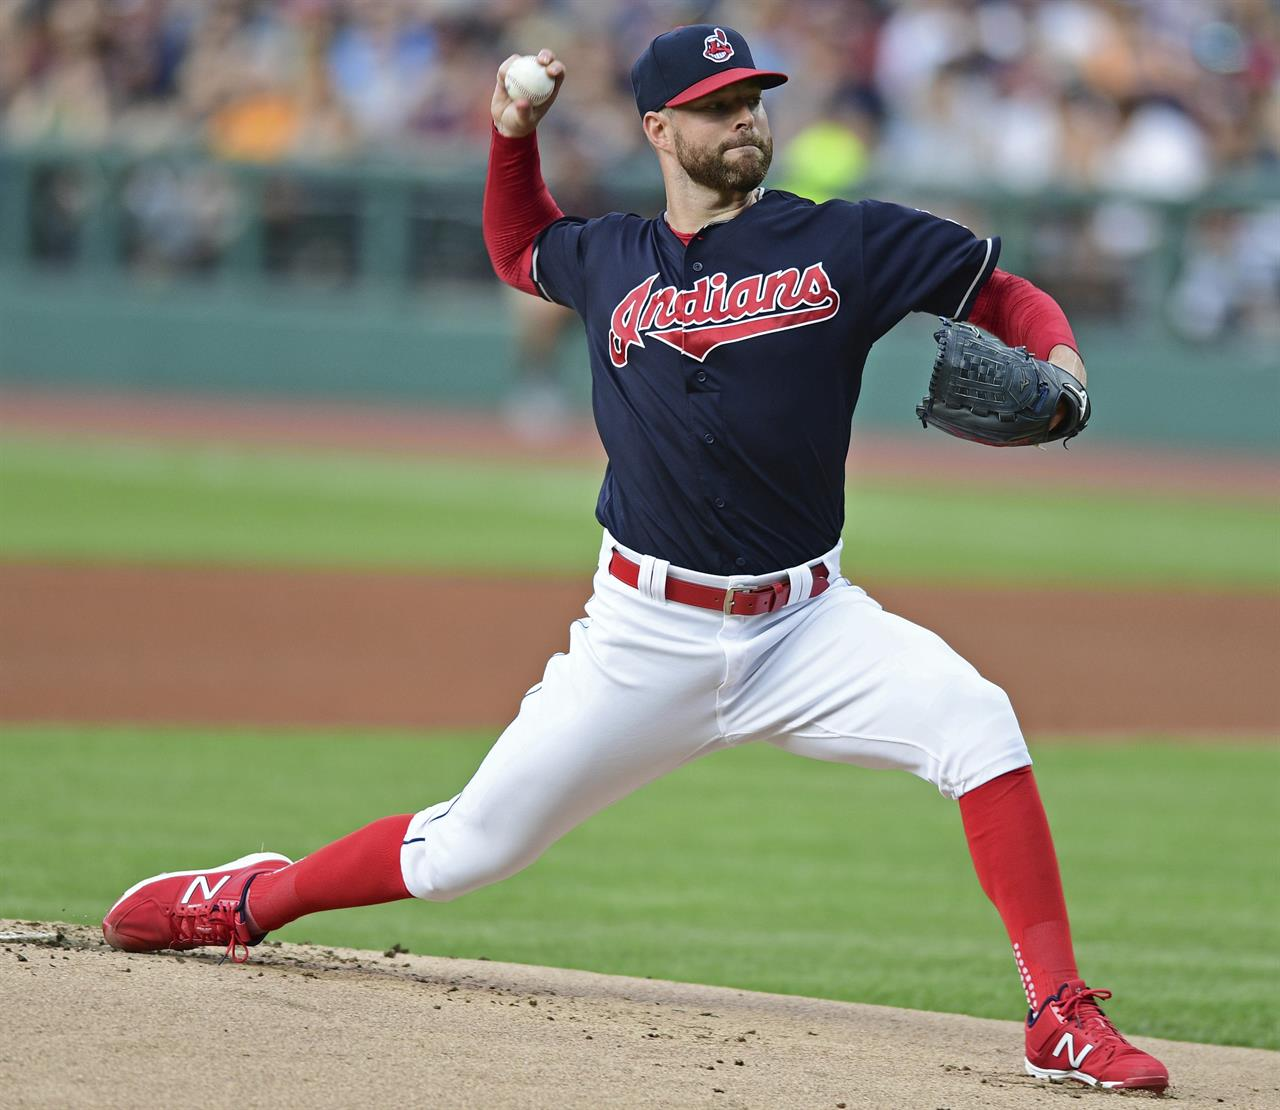 Athletics Tigers Game Suspended In 7th With A S Up 5 3: All-Star Fulmer Outlasts Kluber As Tigers Top Indians 5-3